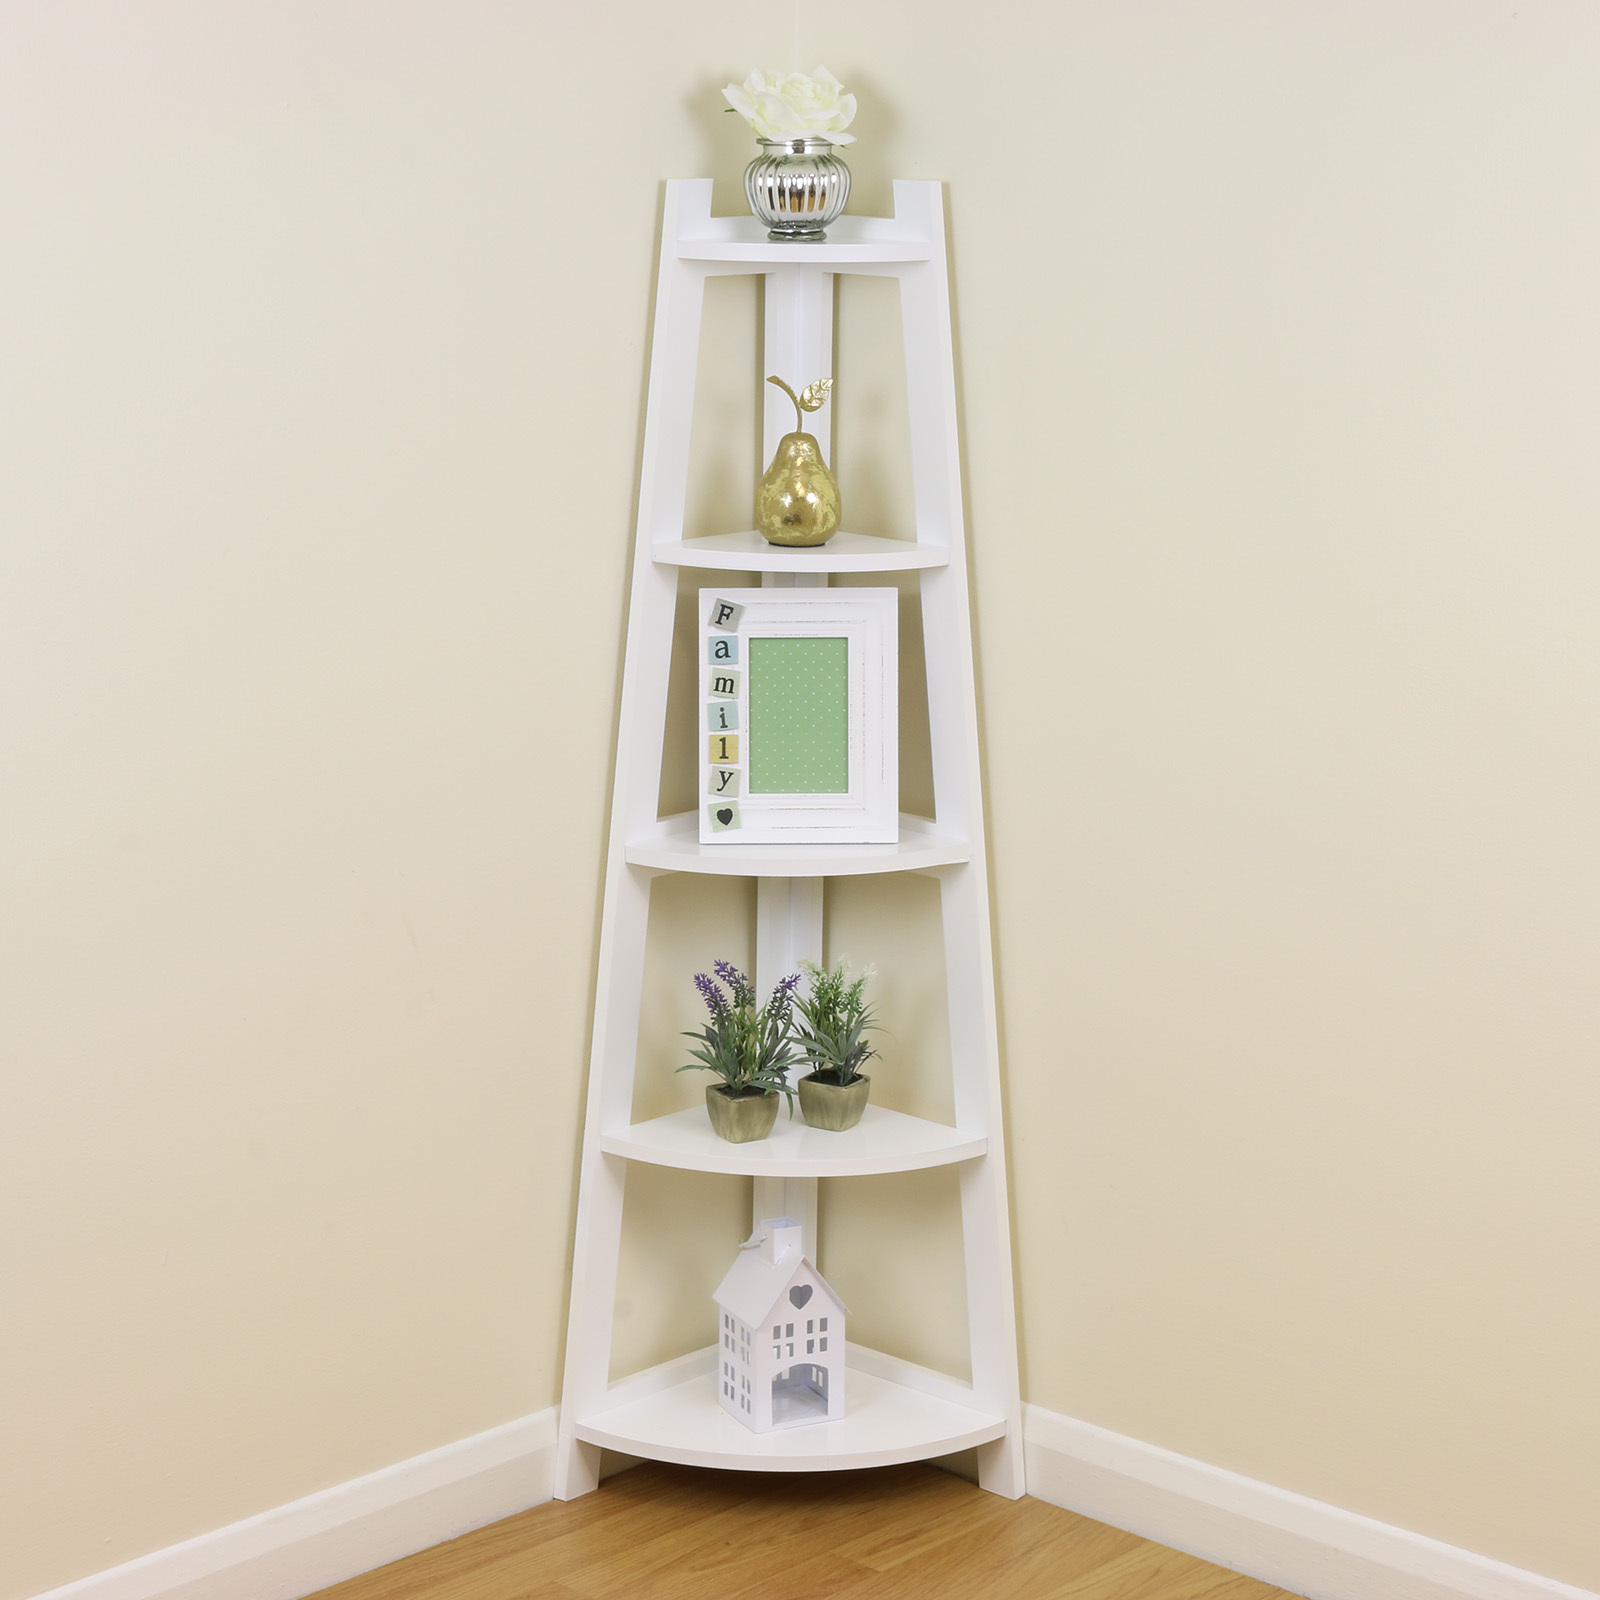 White 5 tier corner shelf shelving unit stand home - White bathroom corner shelf unit ...